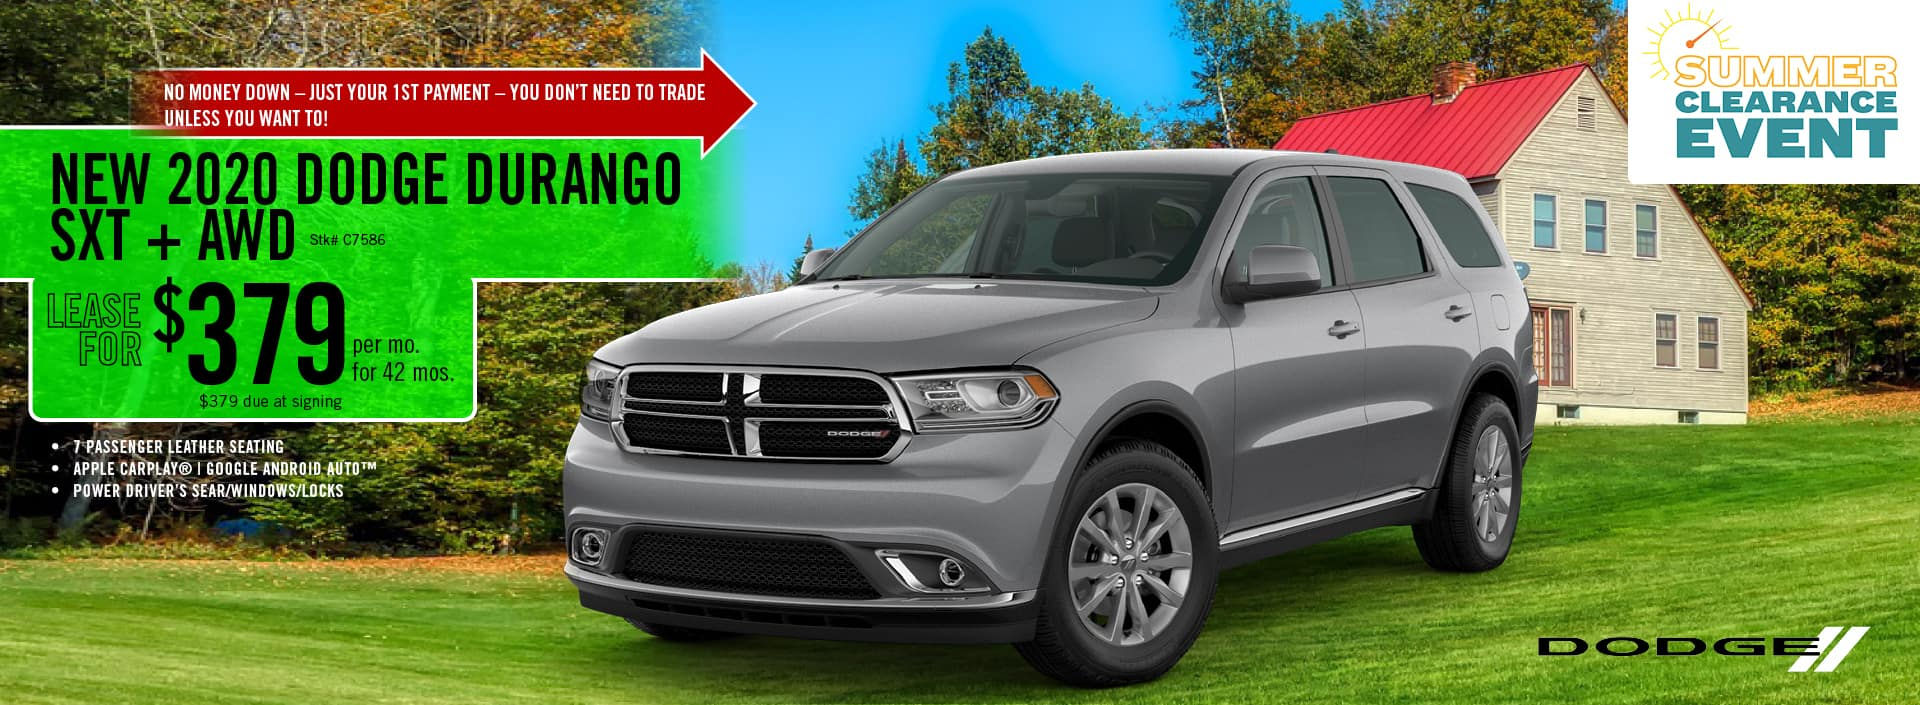 2020 Dodge Durango SXT lease deal $397 for 42 months | Barre, VT